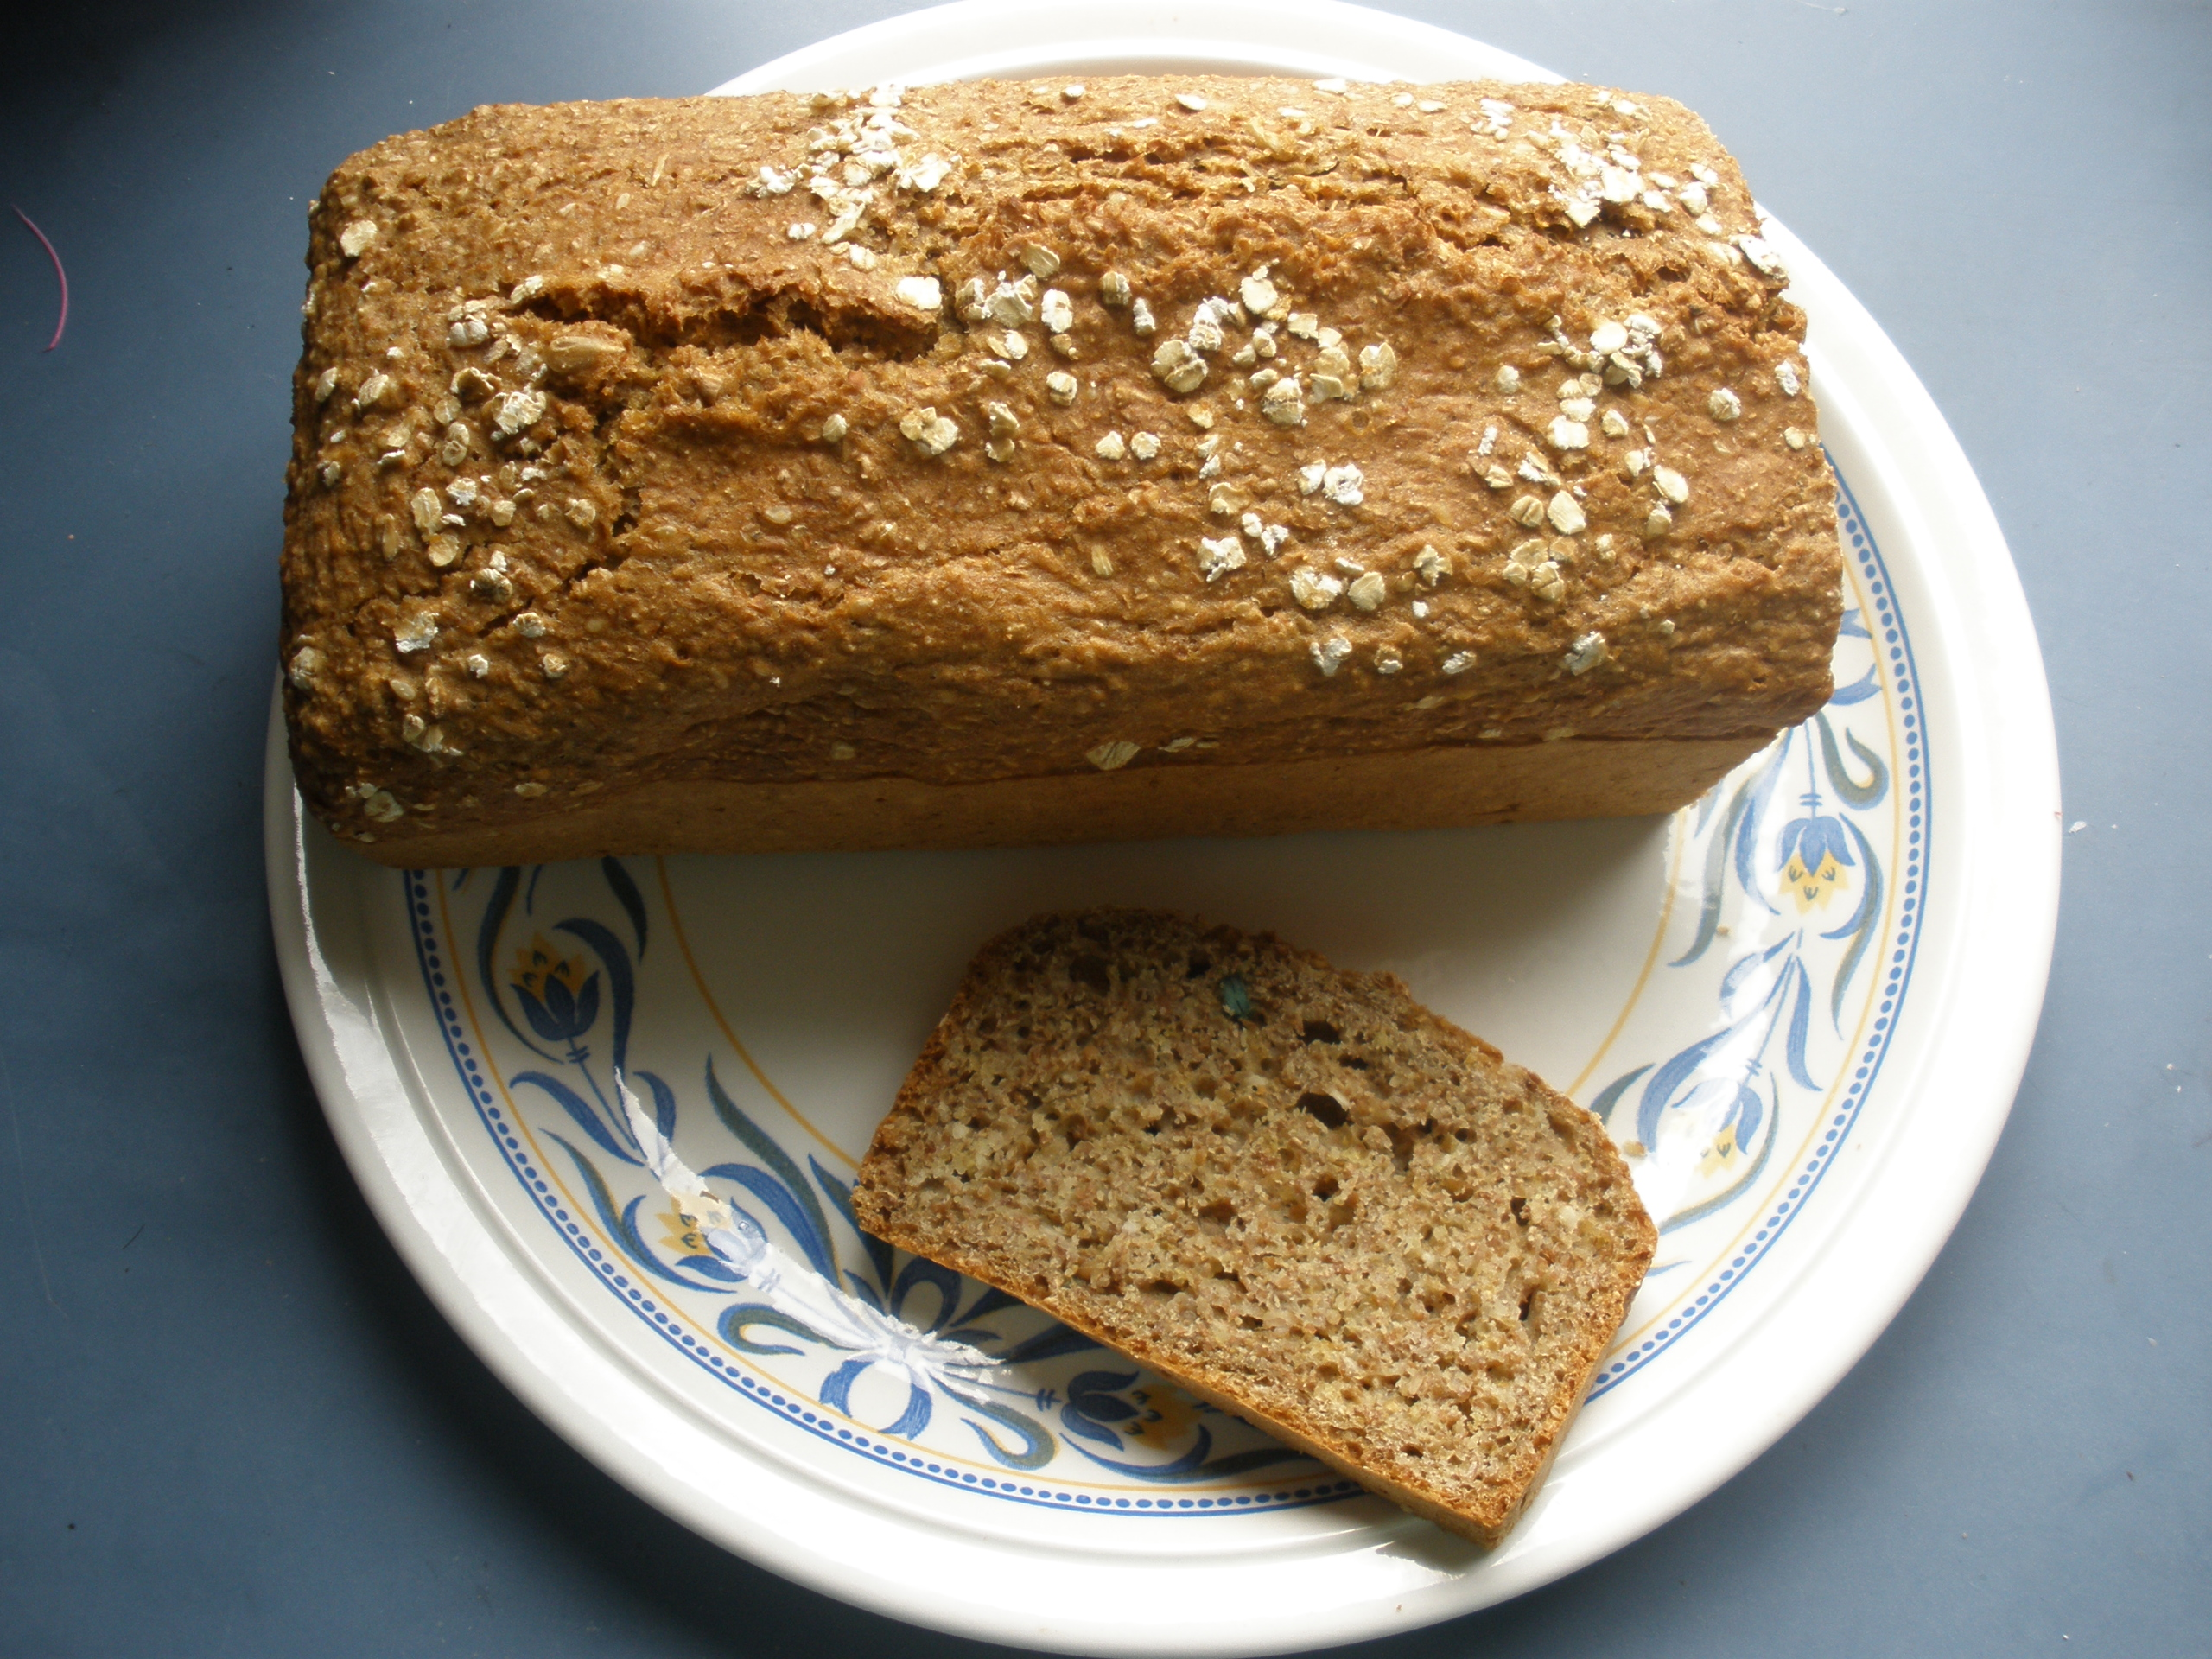 File:Irish brown soda bread.JPG - Wikimedia Commons